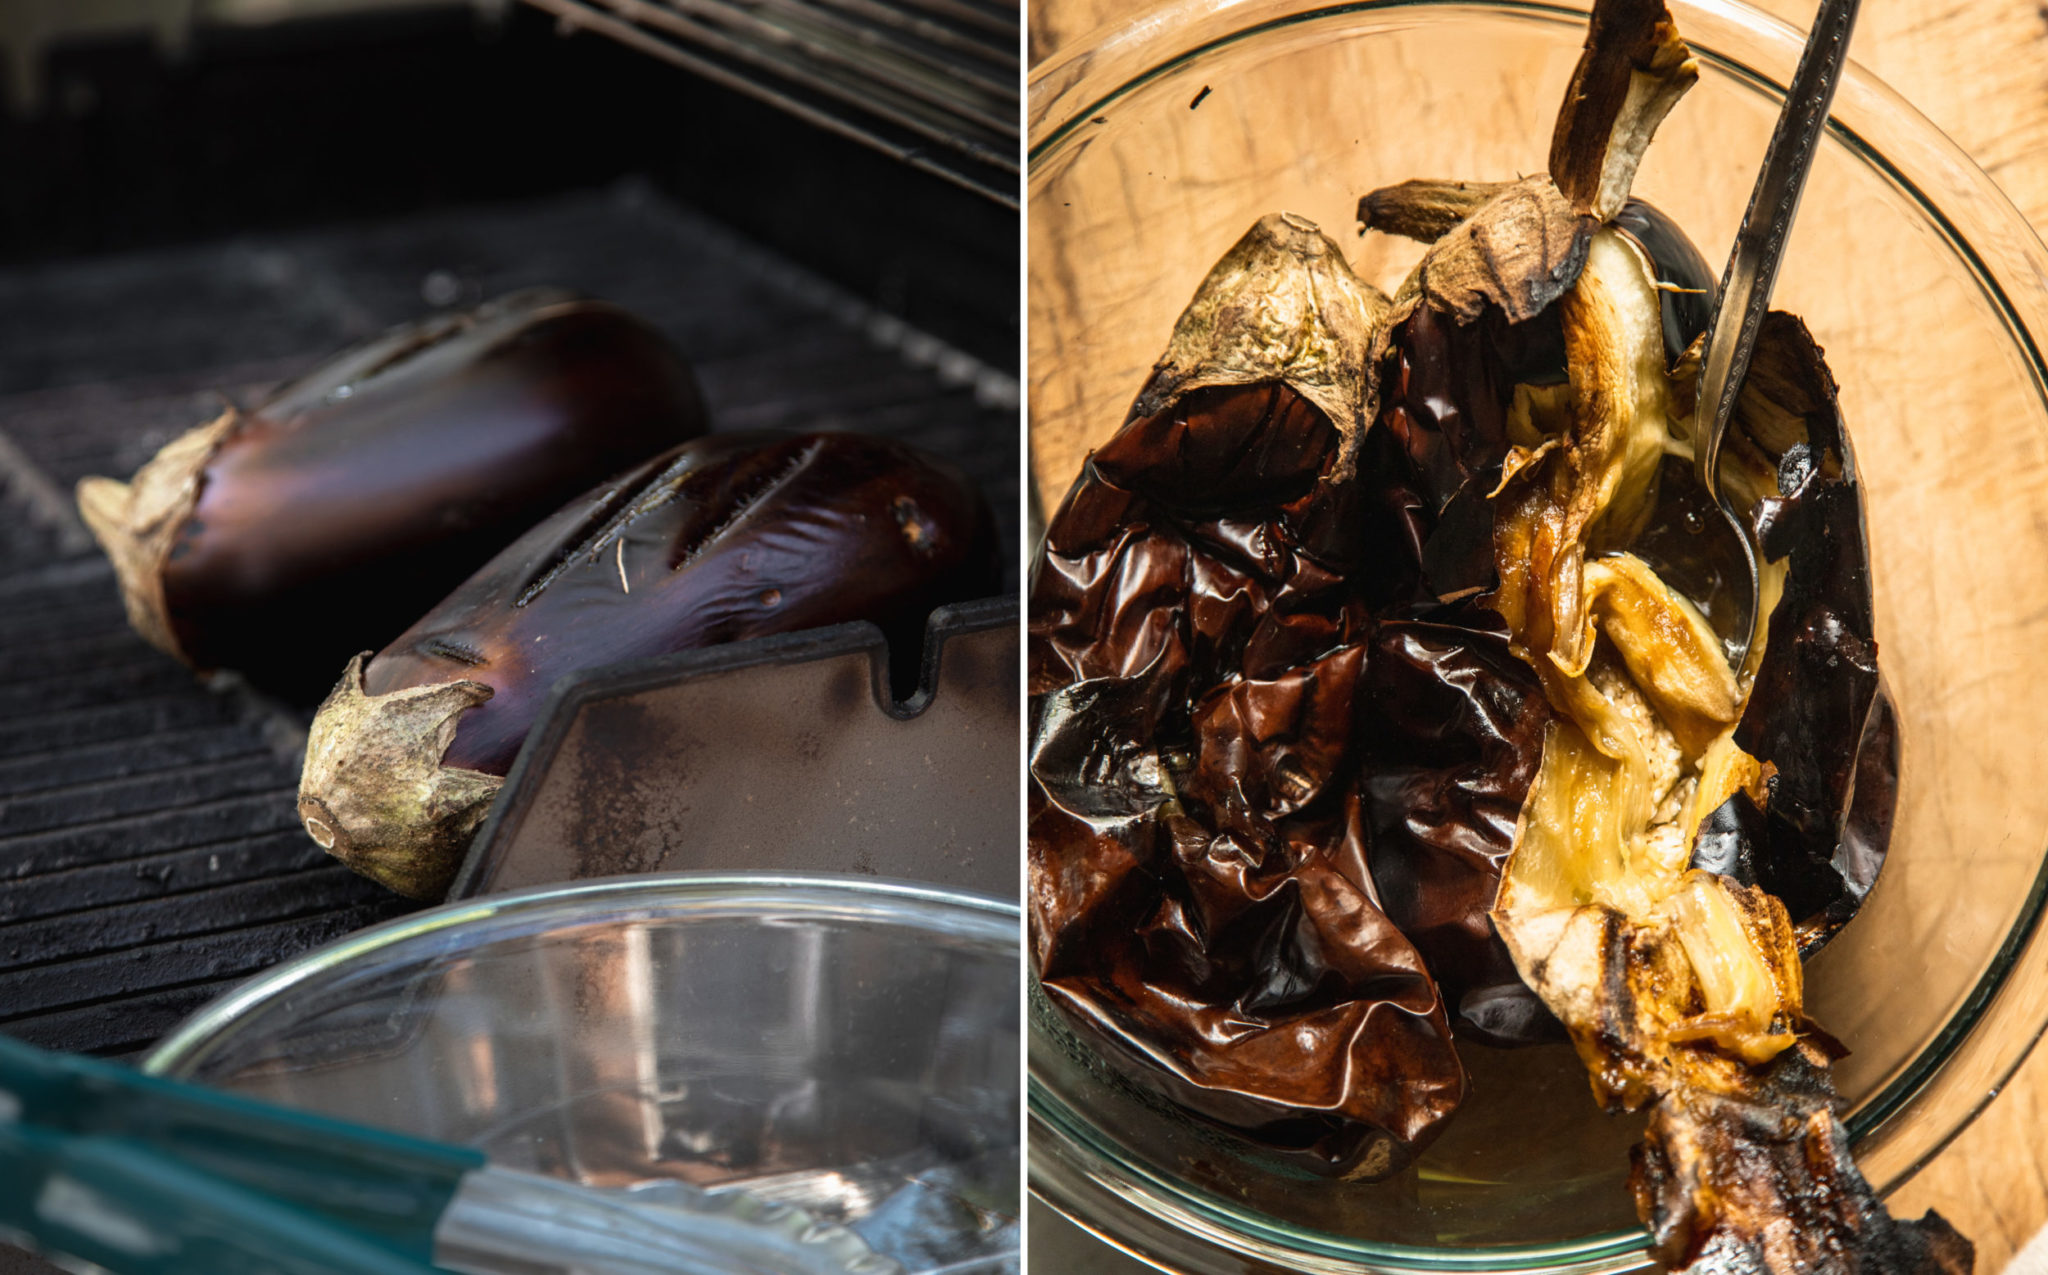 Two images show eggplants on a grill and cooked, totally shrivelled and soft eggplants in a glass bowl.